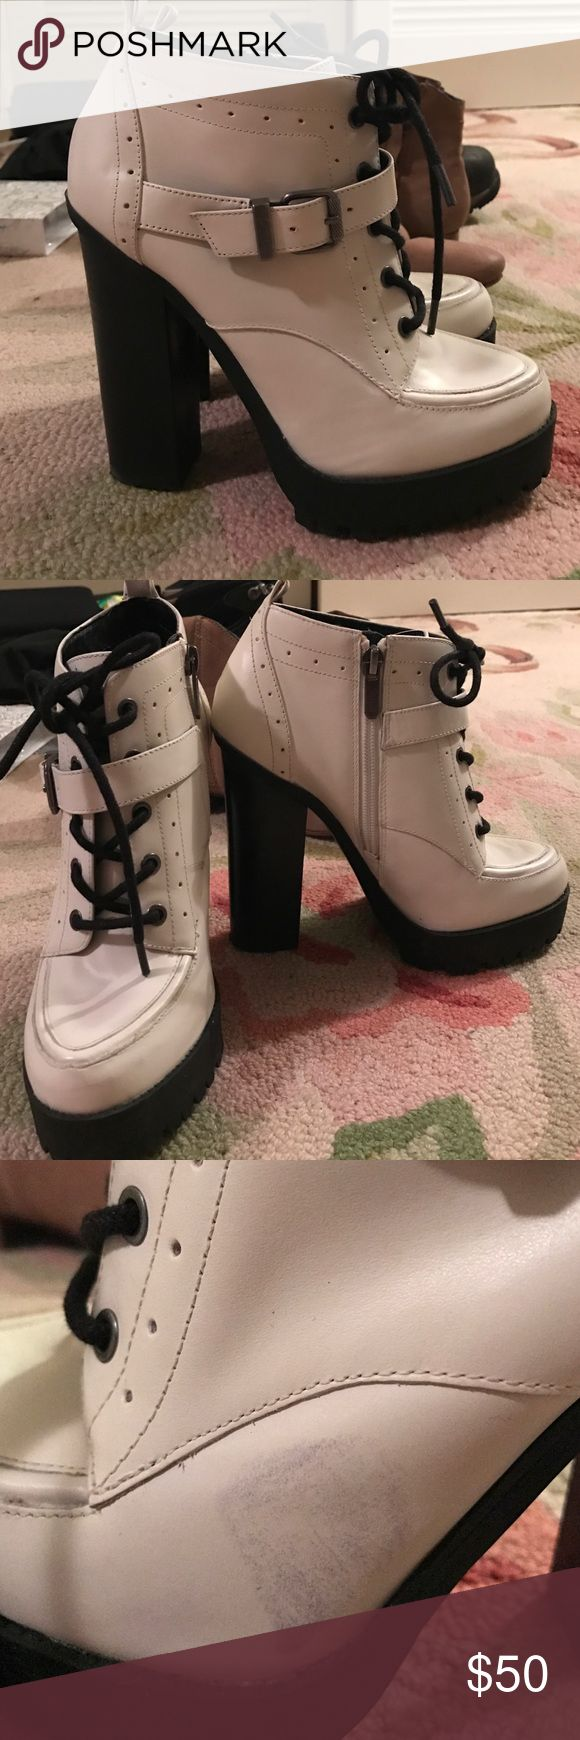 Black and white Sam Edelman booties size 6.5 Black and white Sam Edelman booties size 6.5.  Zips on inside to put on and take off - don't need to re-tie each time. Platform and stacked heel. Small scuffs on front and small black scuff on side of left boot - priced accordingly Circus by Sam Edelman Shoes Ankle Boots & Booties